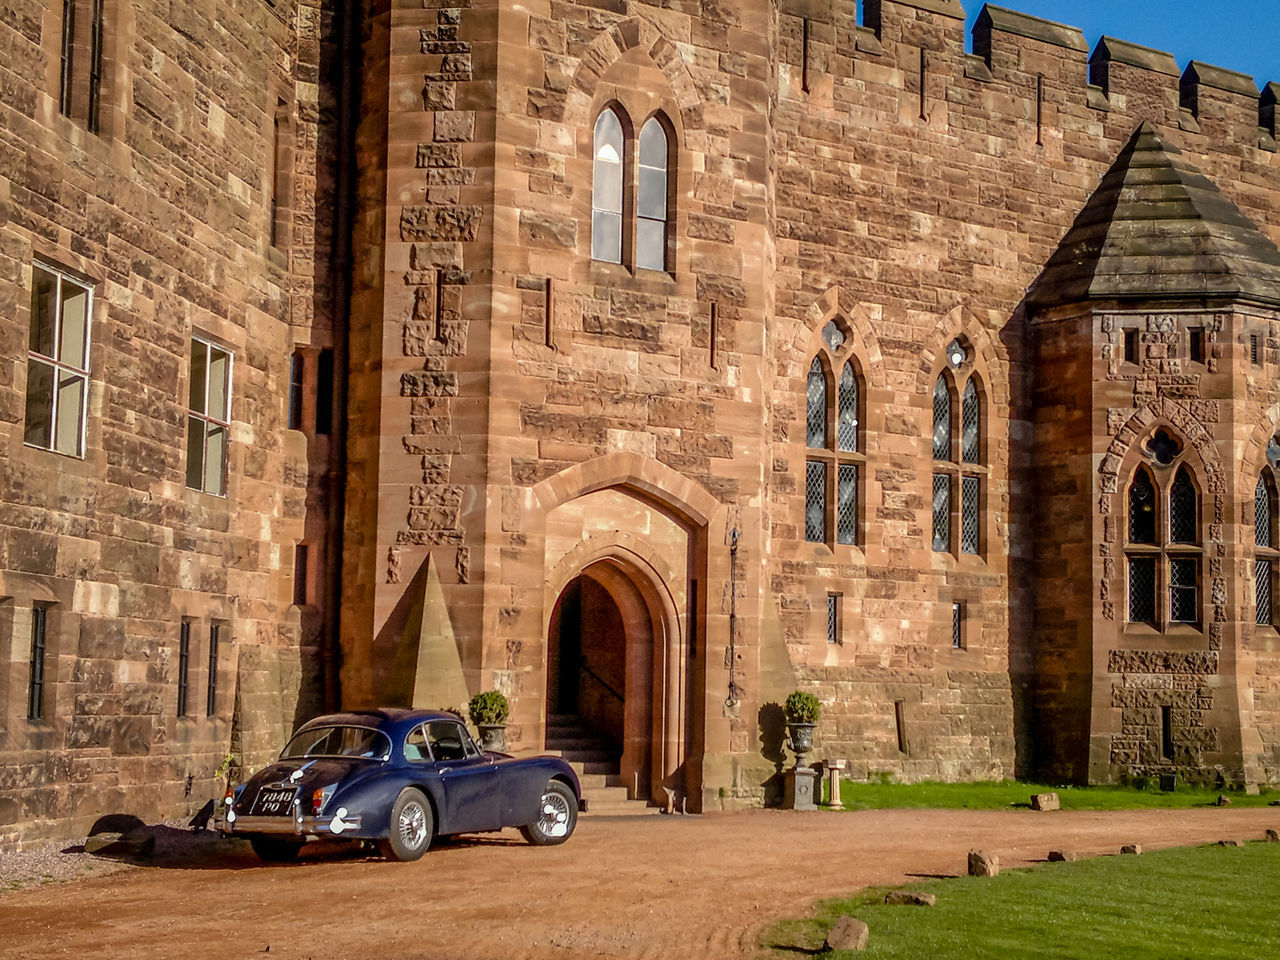 Peckforton Castle Architecture Building Exterior Built Structure Castle Castles Cheshire Heritage History Old Peckforton Peckforton Castle Wedding Wedding Photography